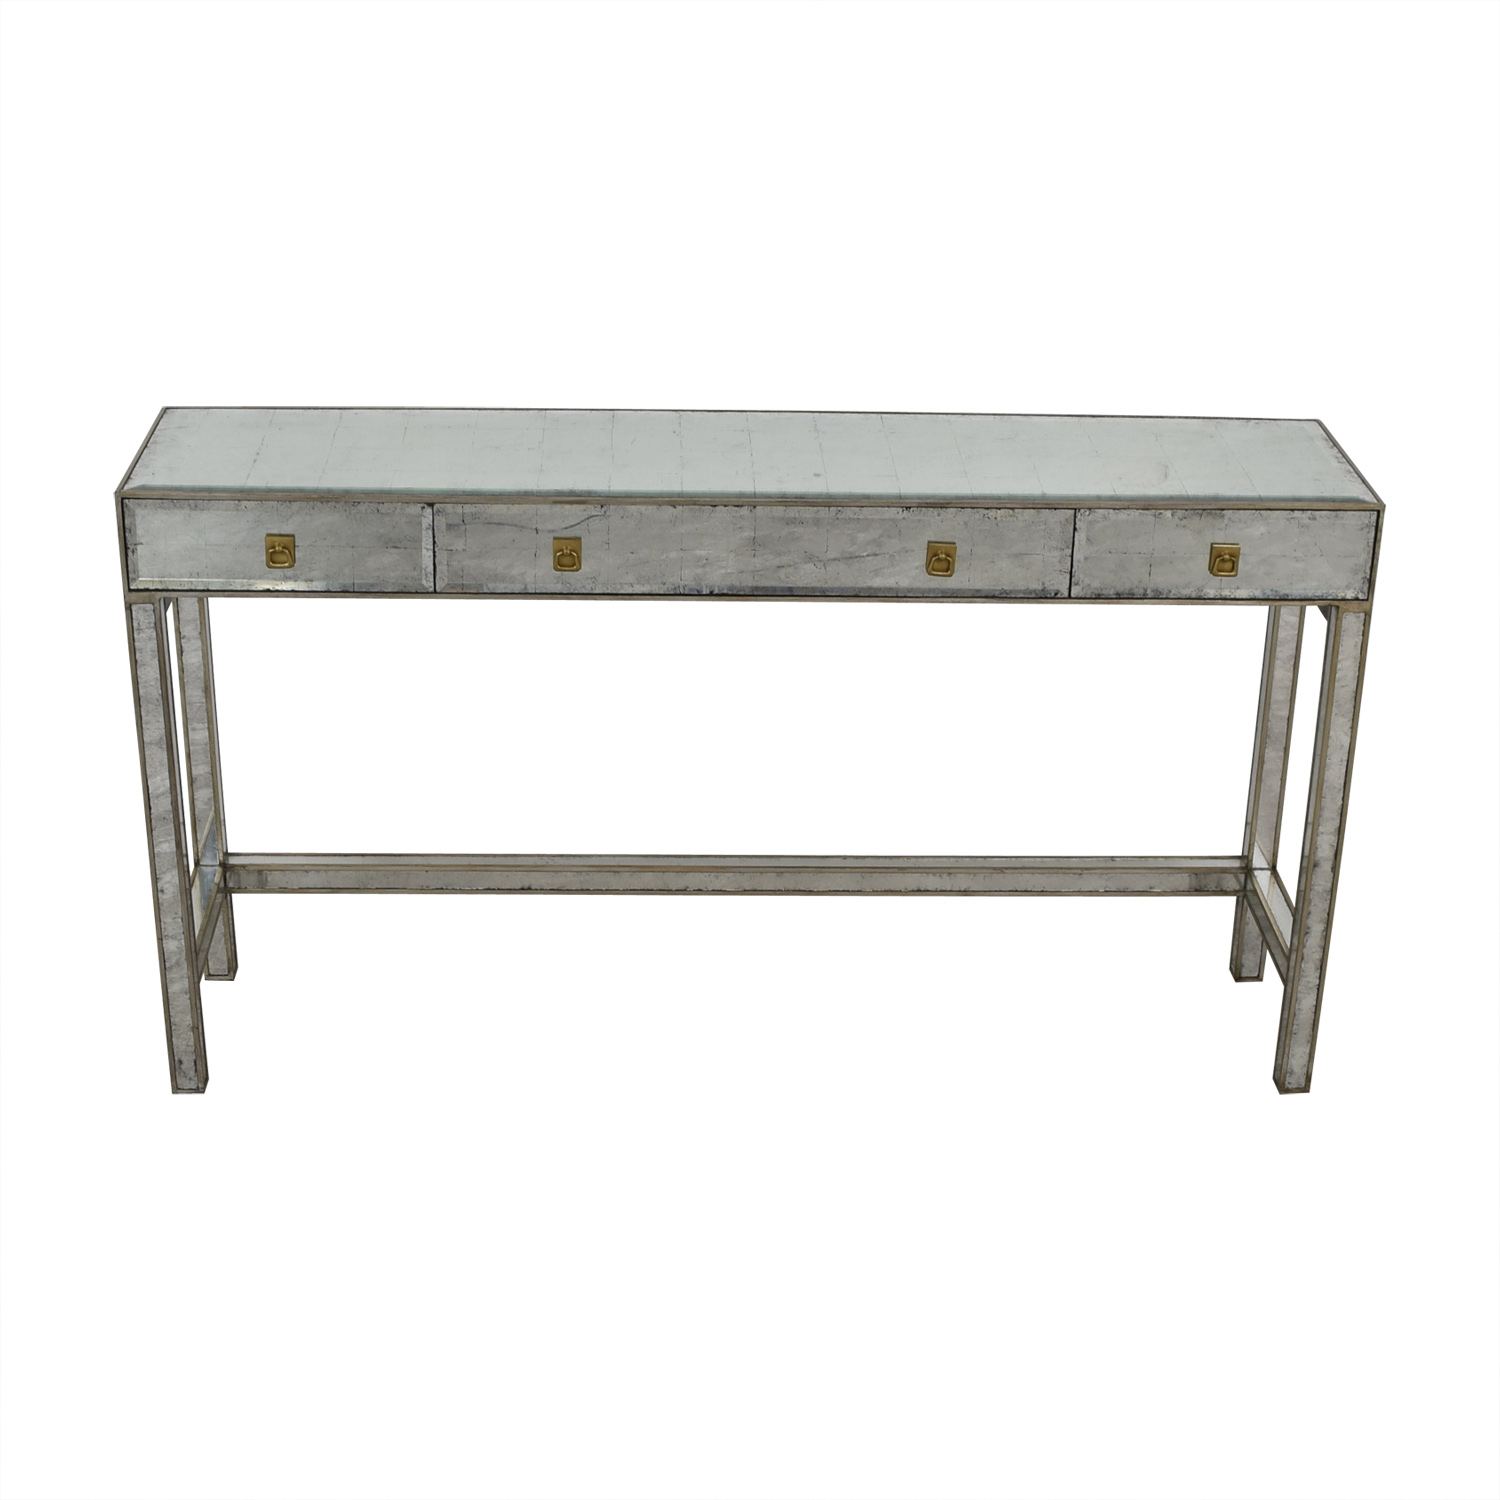 shop Safavieh Mirrored Console Table Safavieh Accent Tables